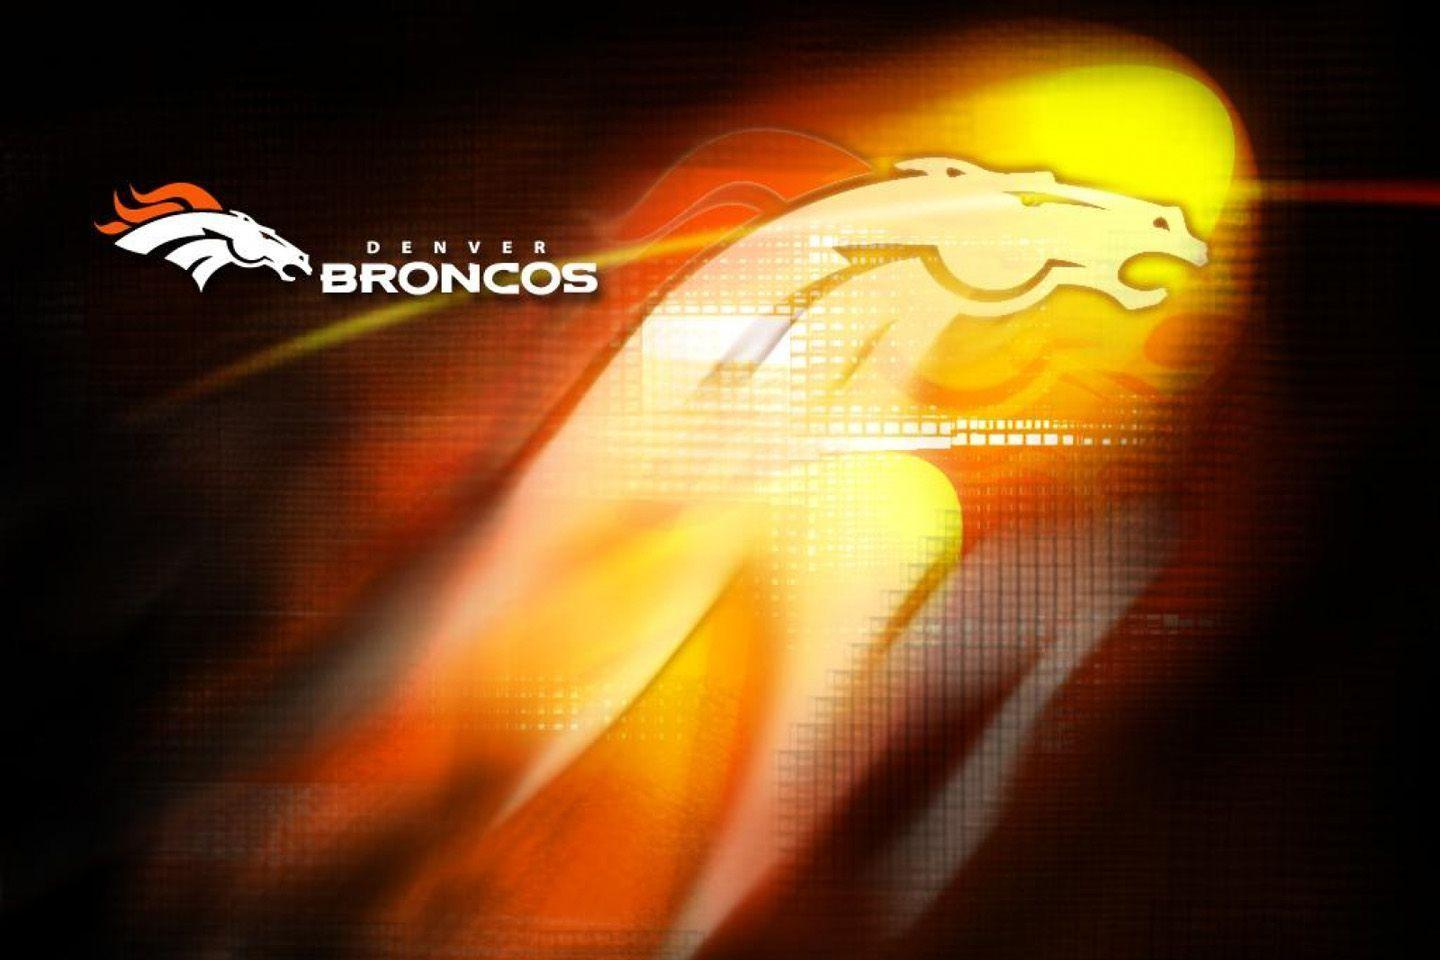 Free Denver Broncos wallpapers desktop image